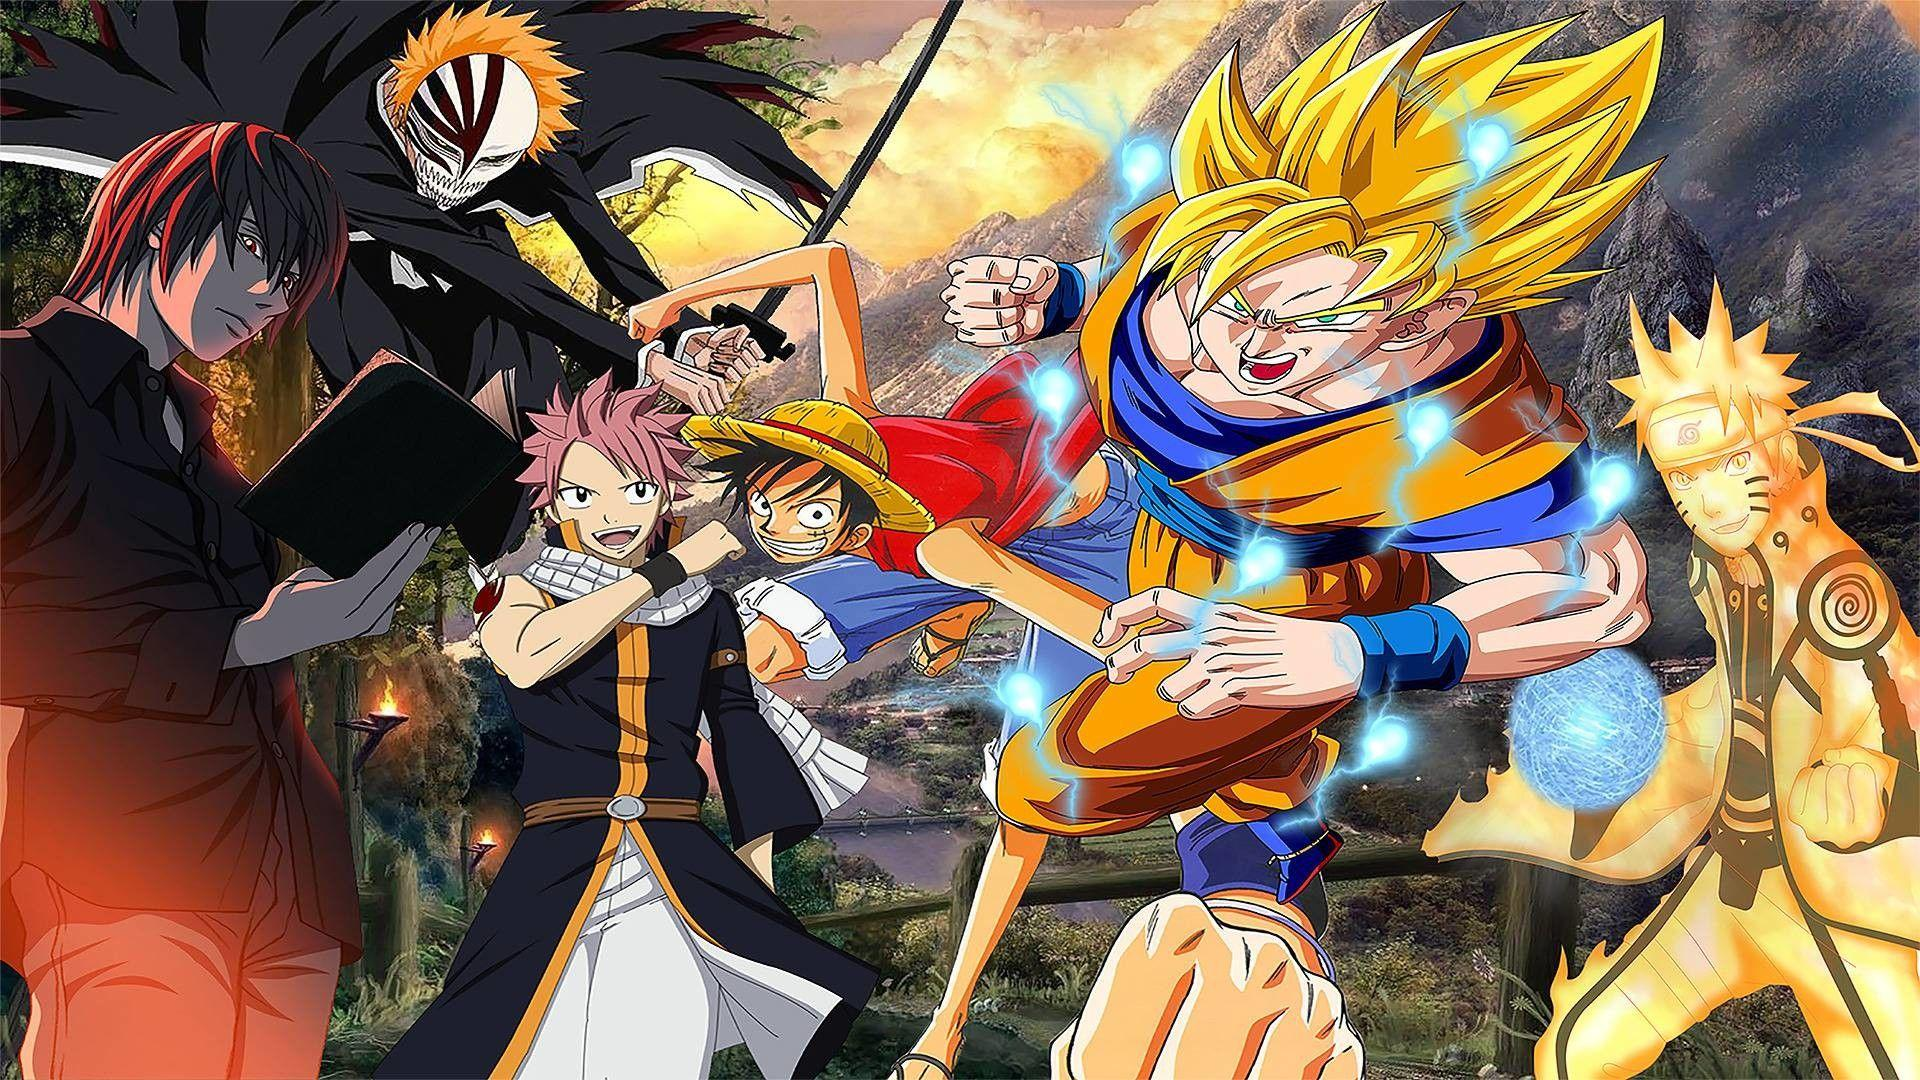 Wallpaper Fairy Tail Dragon Slayers